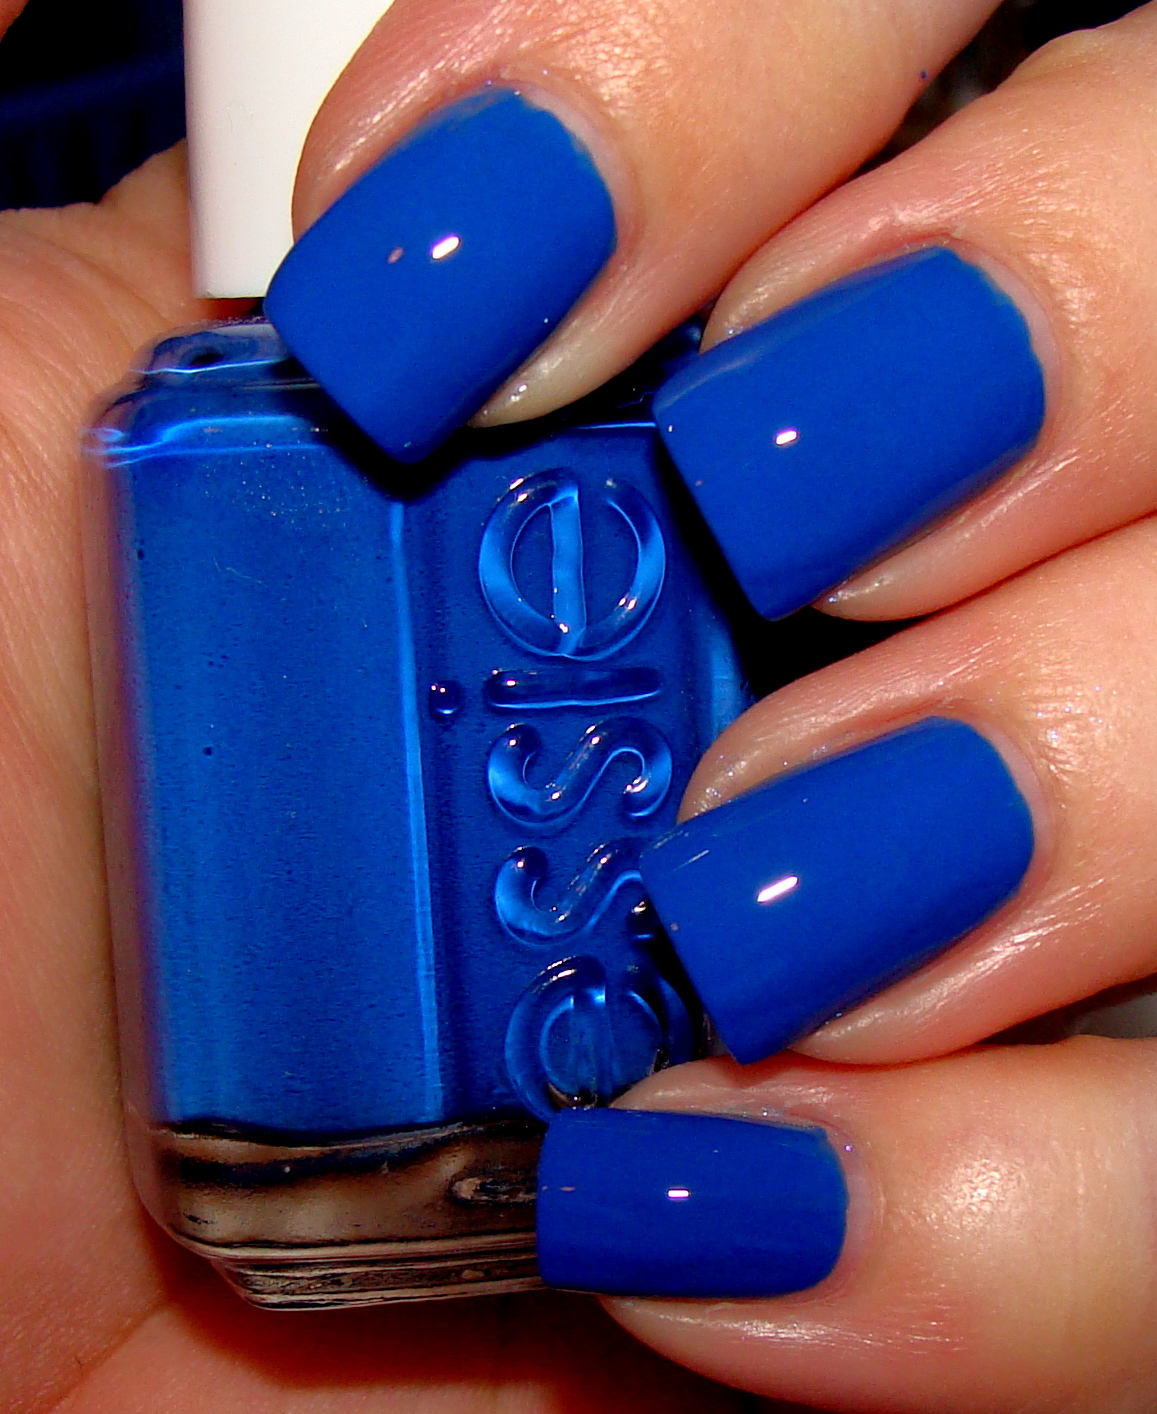 Blue Grey Nail Polish Essie: Yolanda's Makeup And Skincare Blog Sale: NAIL POLISH